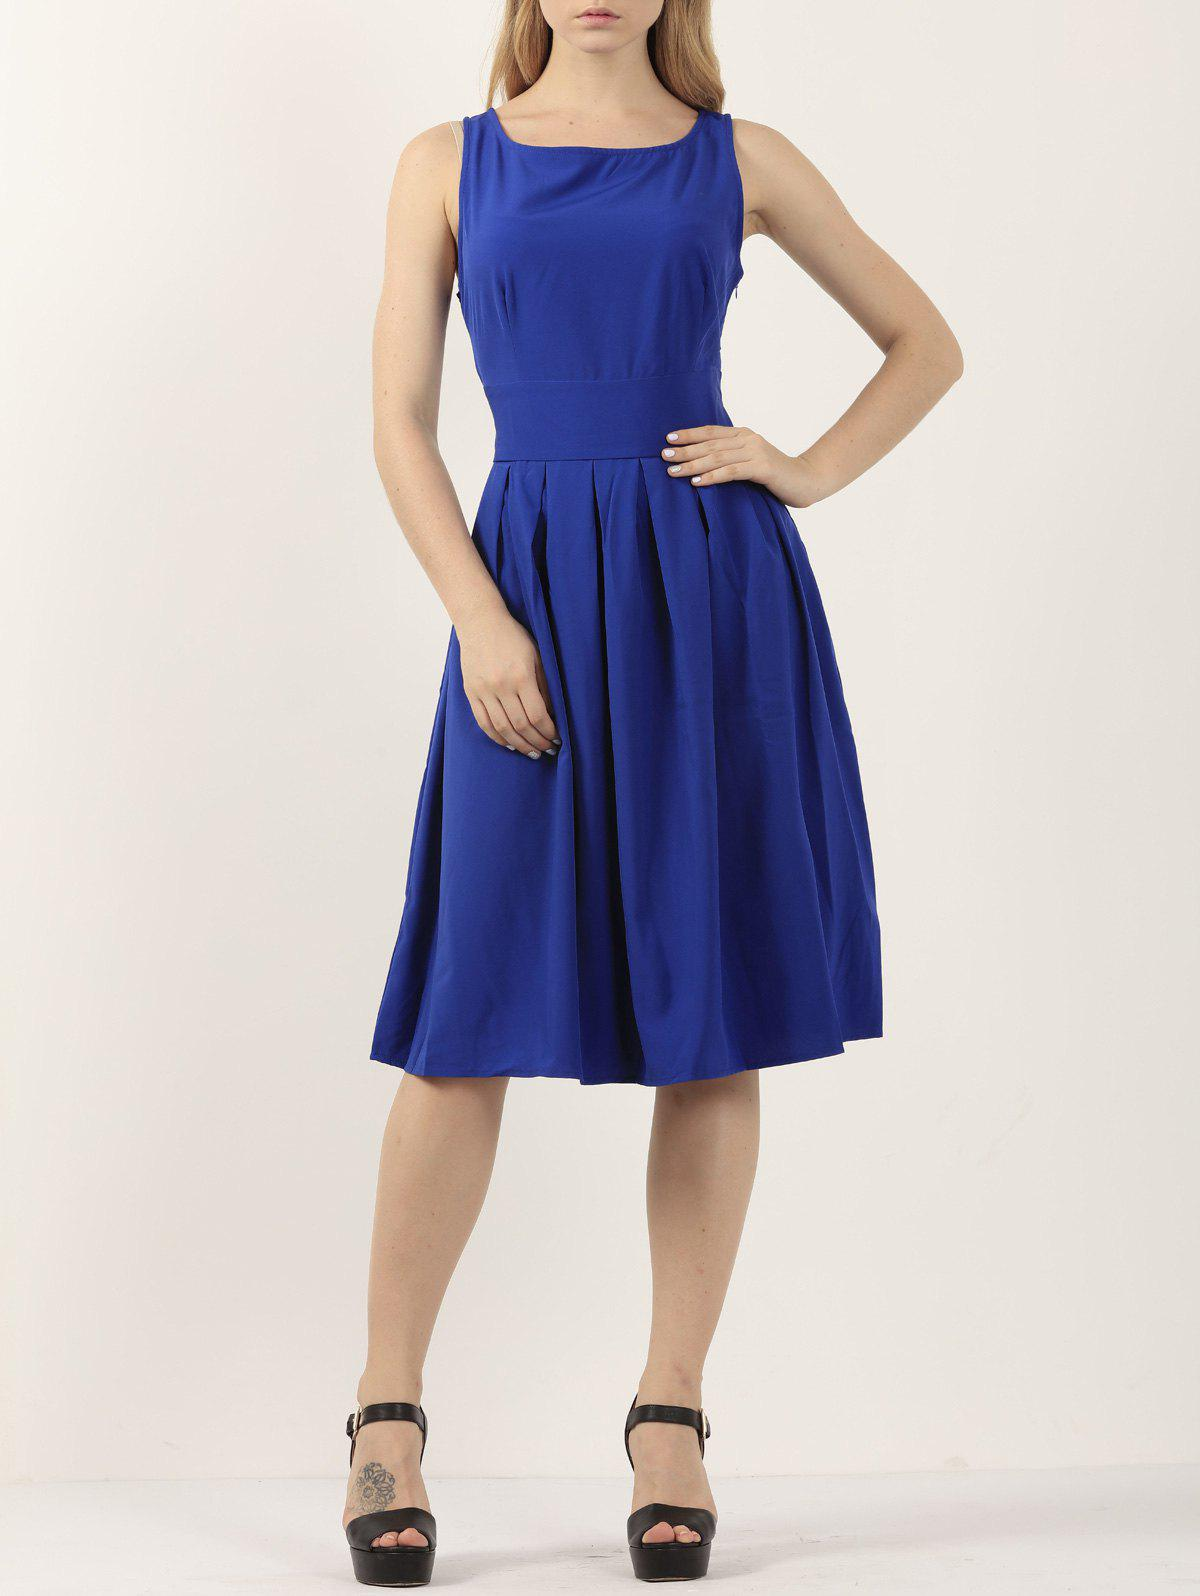 Casual Pleated Sleeveless A Line Dress - SAPPHIRE BLUE S